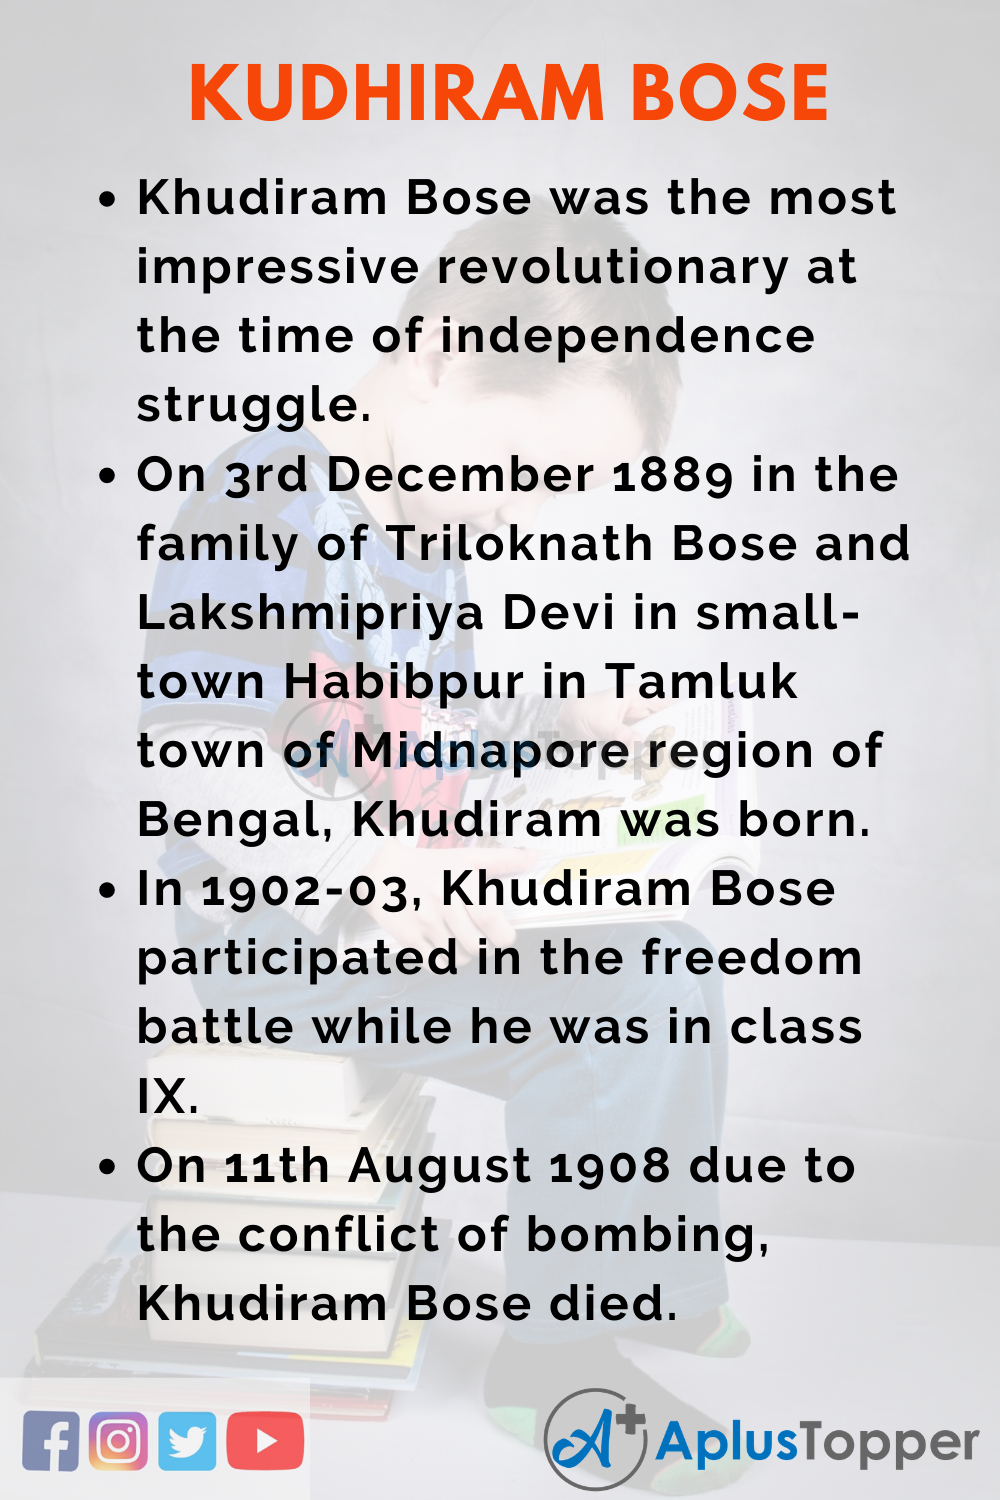 10 lines on Khudiram Bose for Higher Class Students